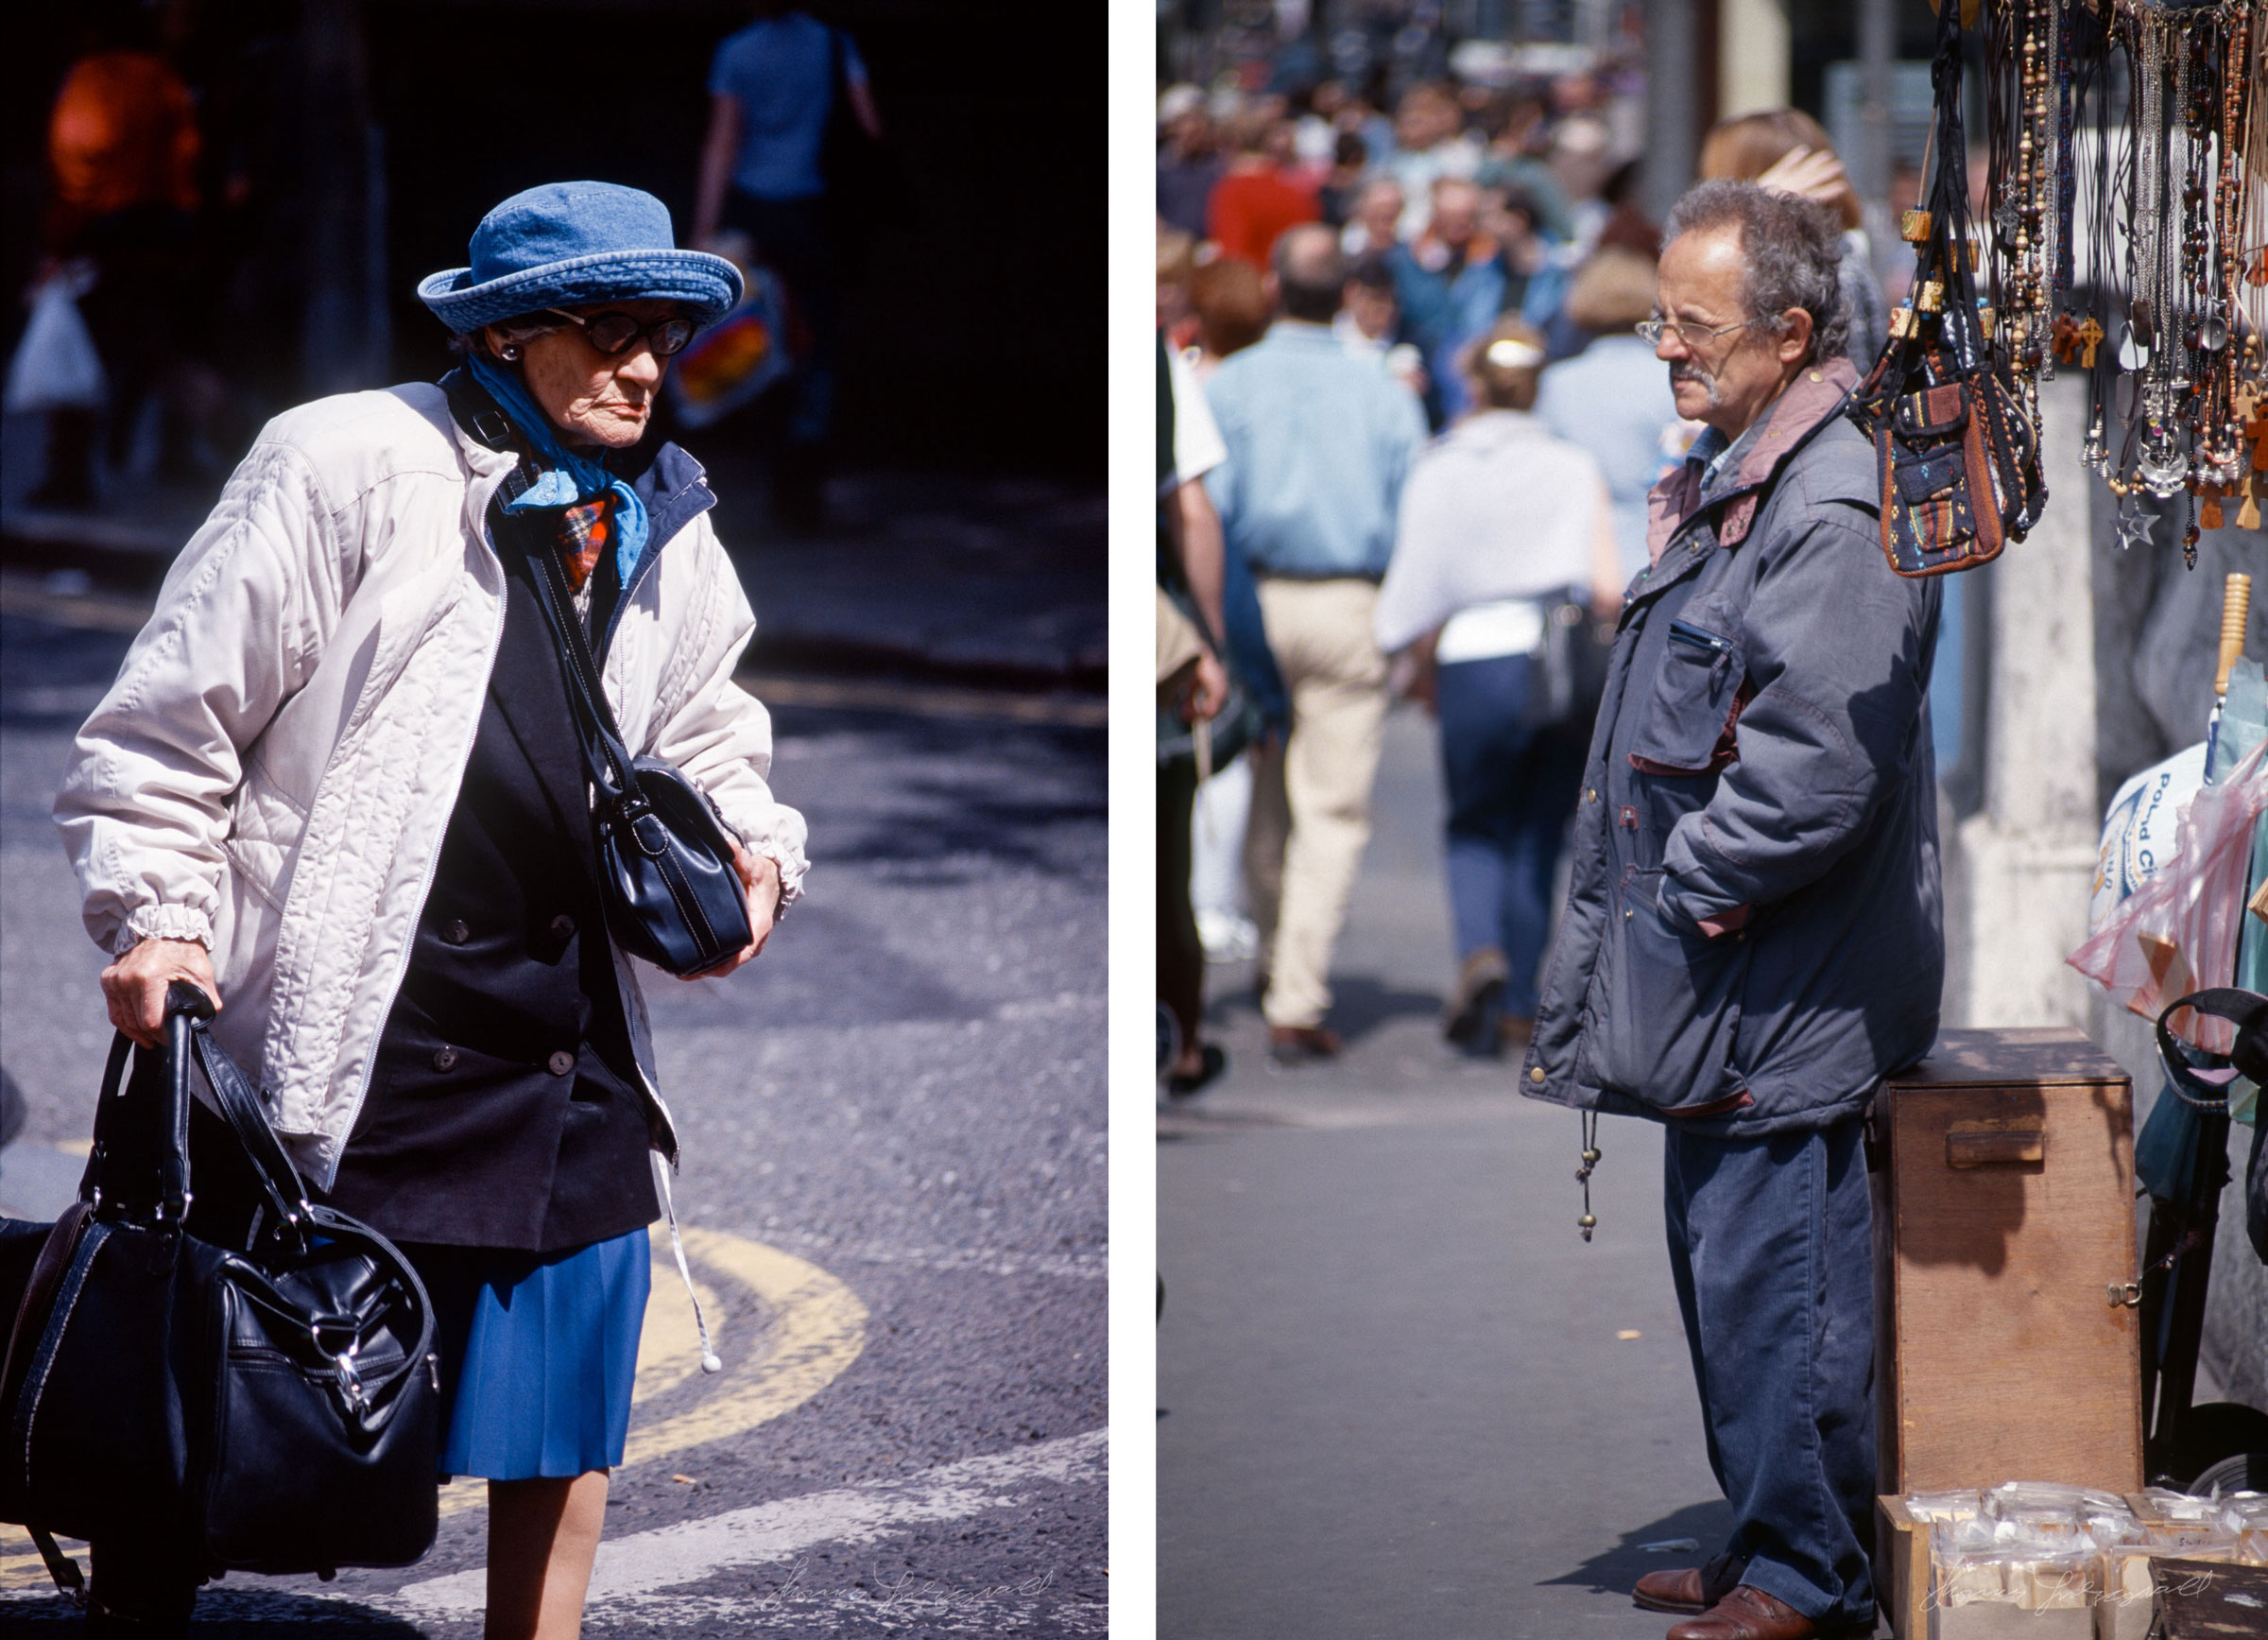 two-up-streets-of-dublin-past03.jpg